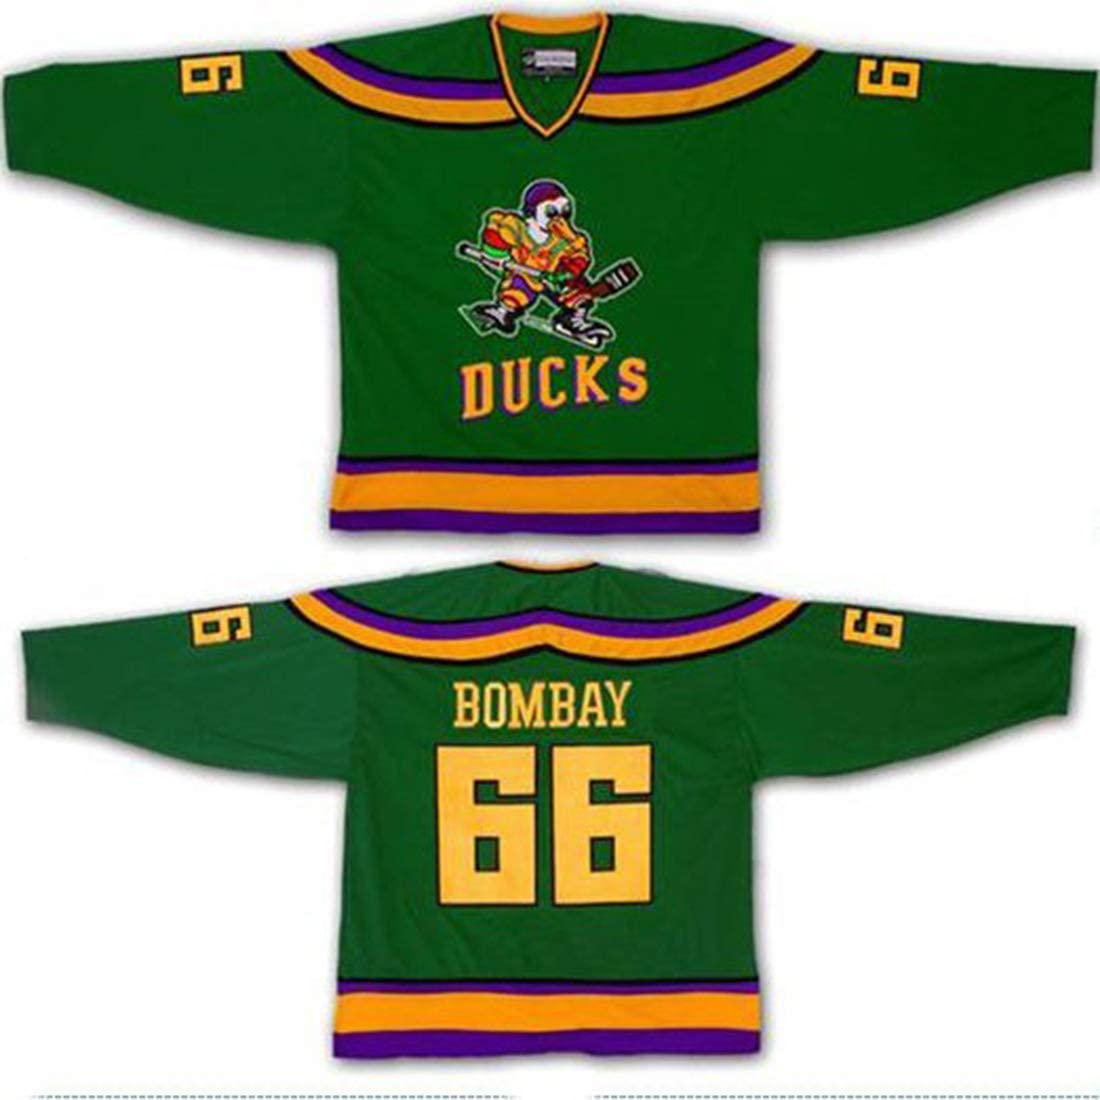 L XL,XXL Sewn M Mighty Ducks Movie Jersey 66 Bomboy Hockey Green Jersey S